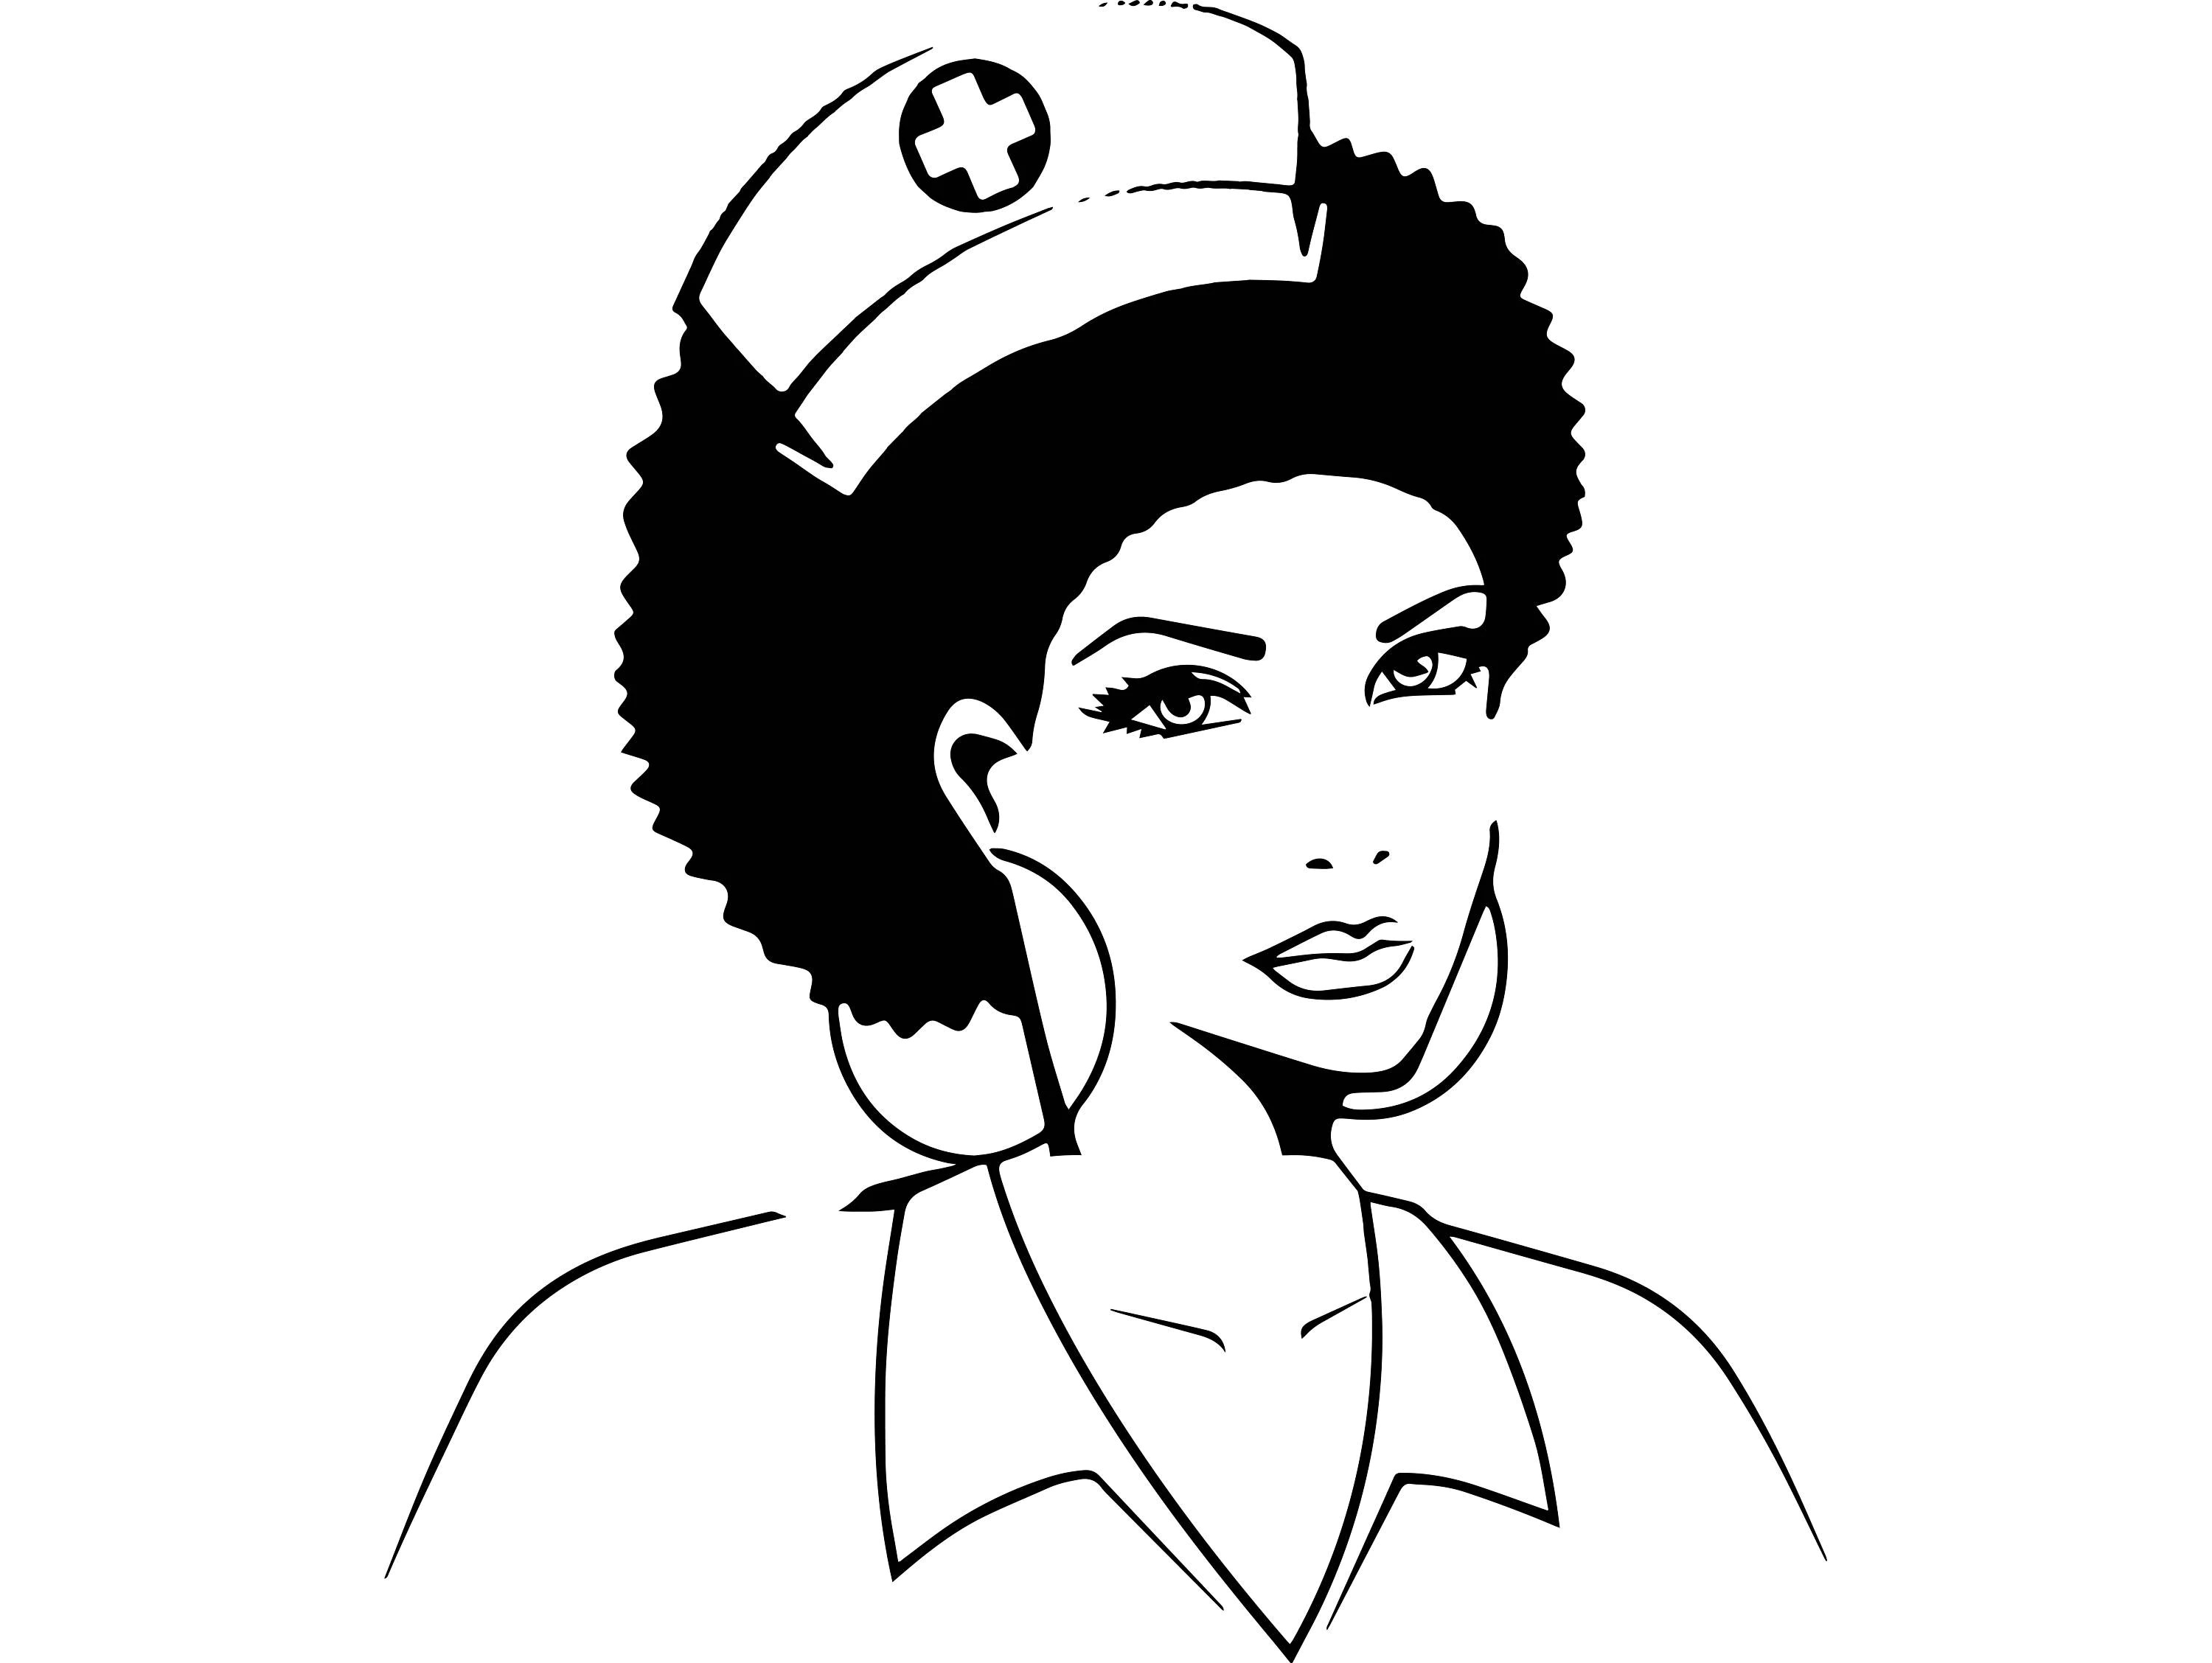 Black Nurse Woman Nubian Princess Queen Afro Hair